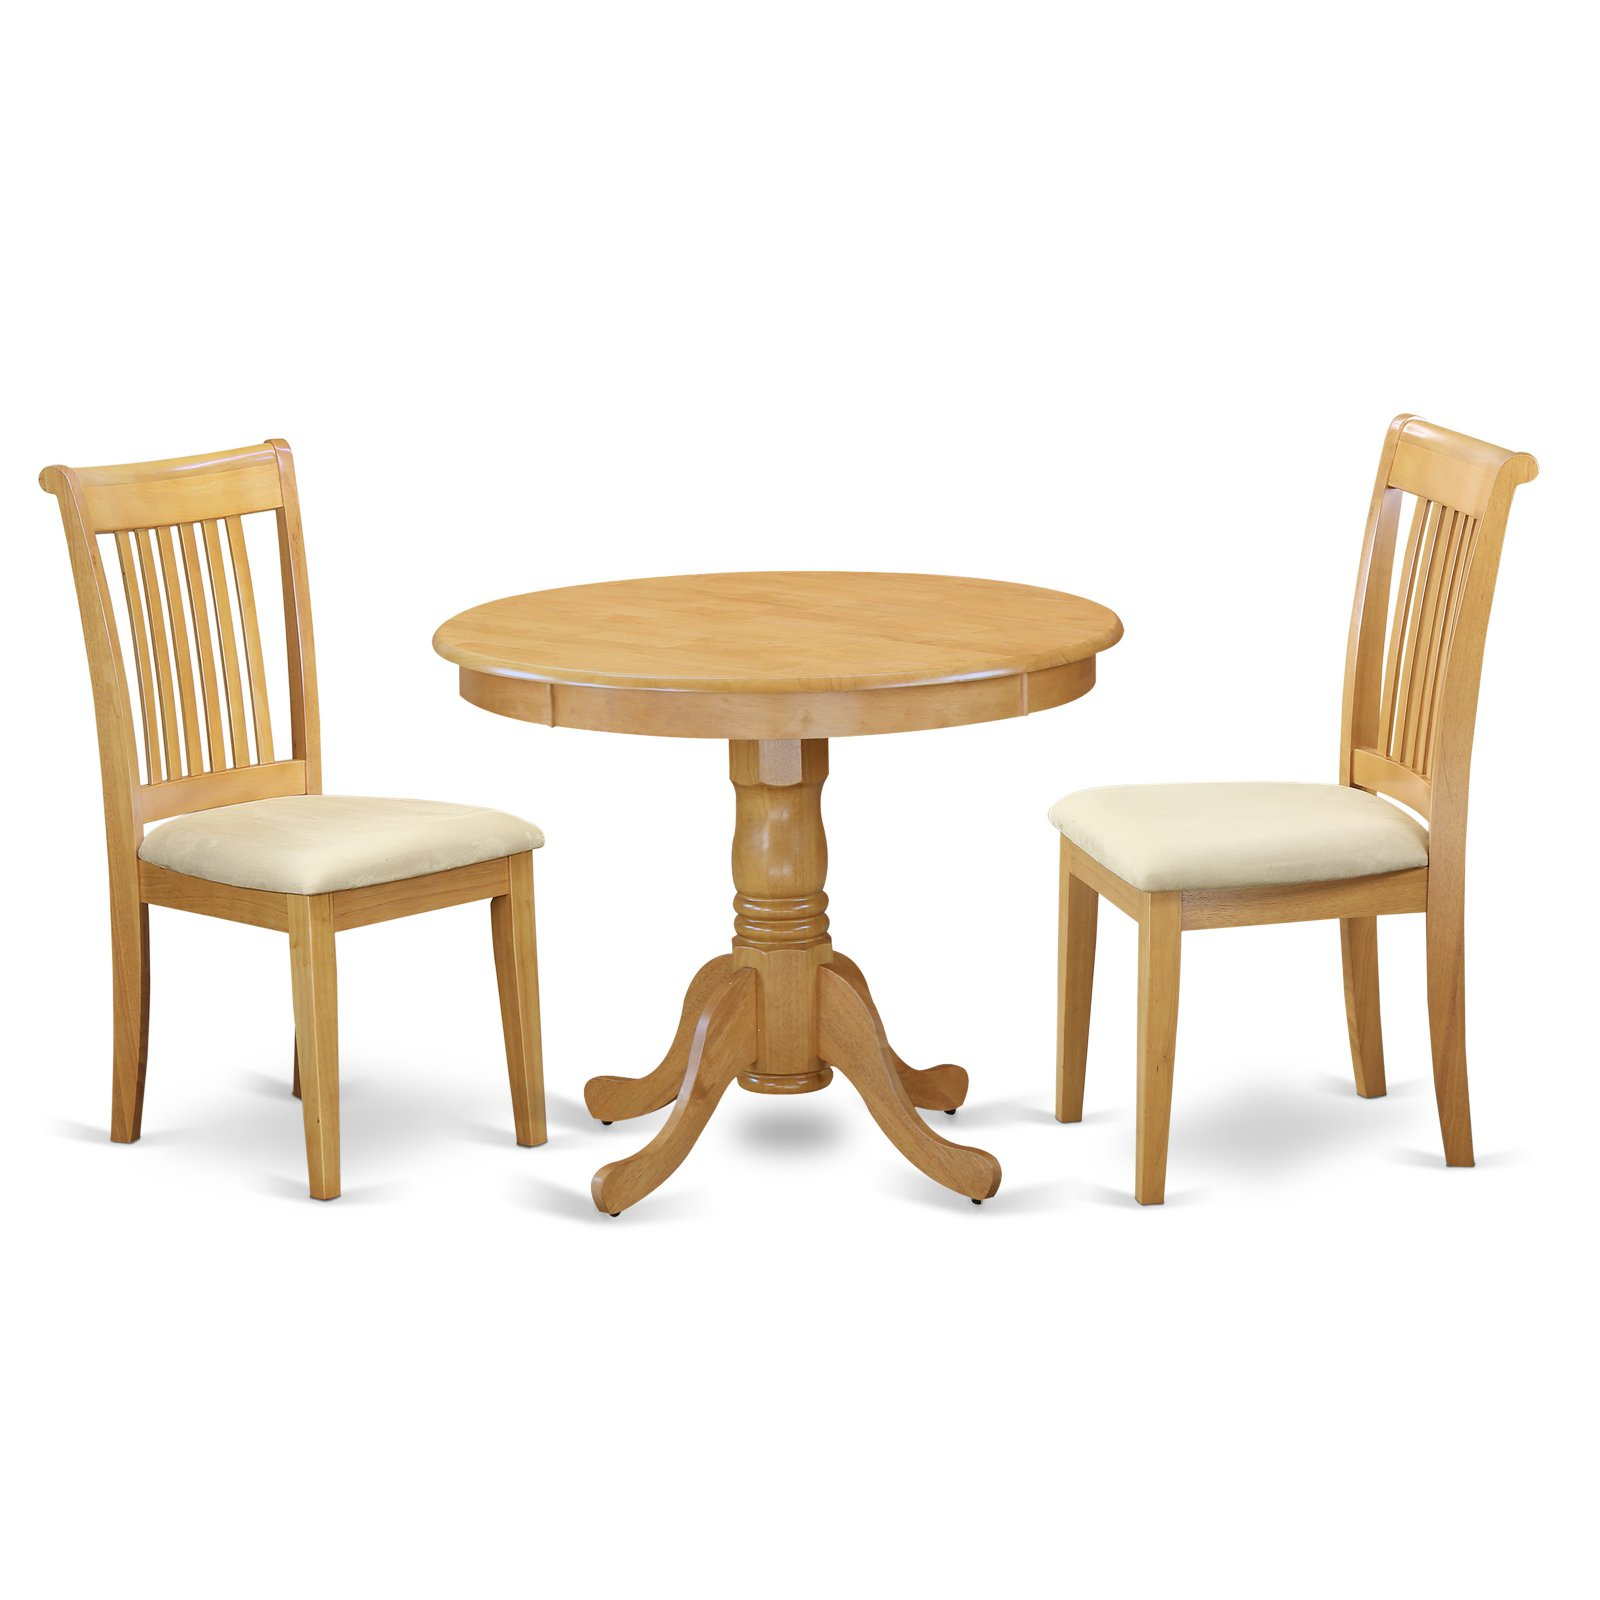 East West Furniture Antique Anpo3 Three Piece Round Pedestal Dining With Regard To Current Travon 5 Piece Dining Sets (View 22 of 25)